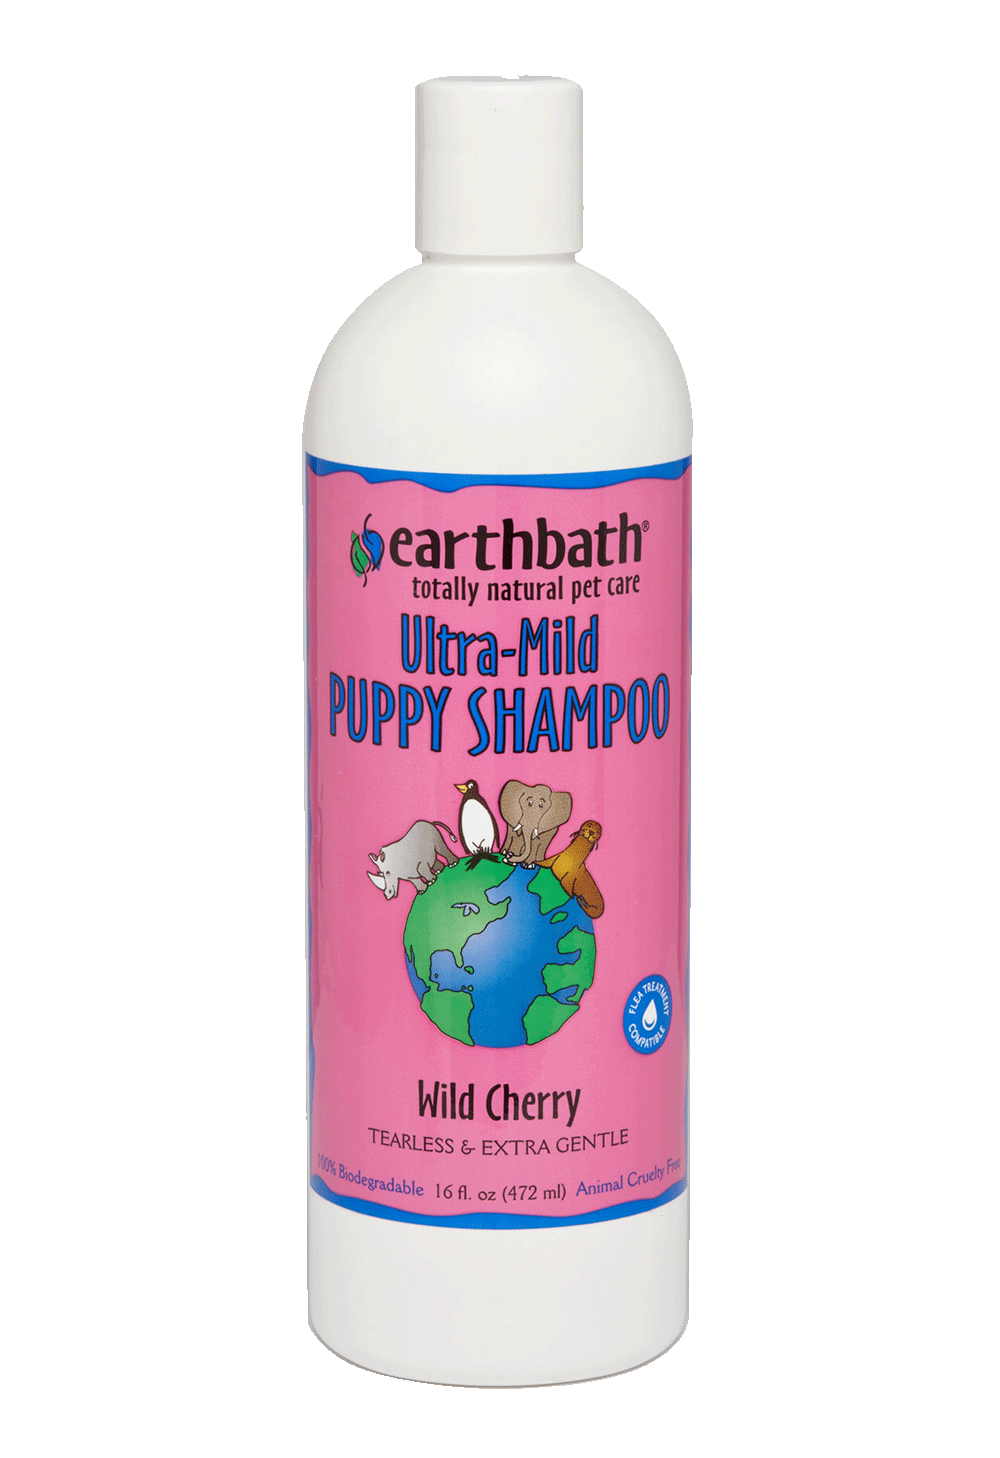 image of ultra mild puppy shampoo